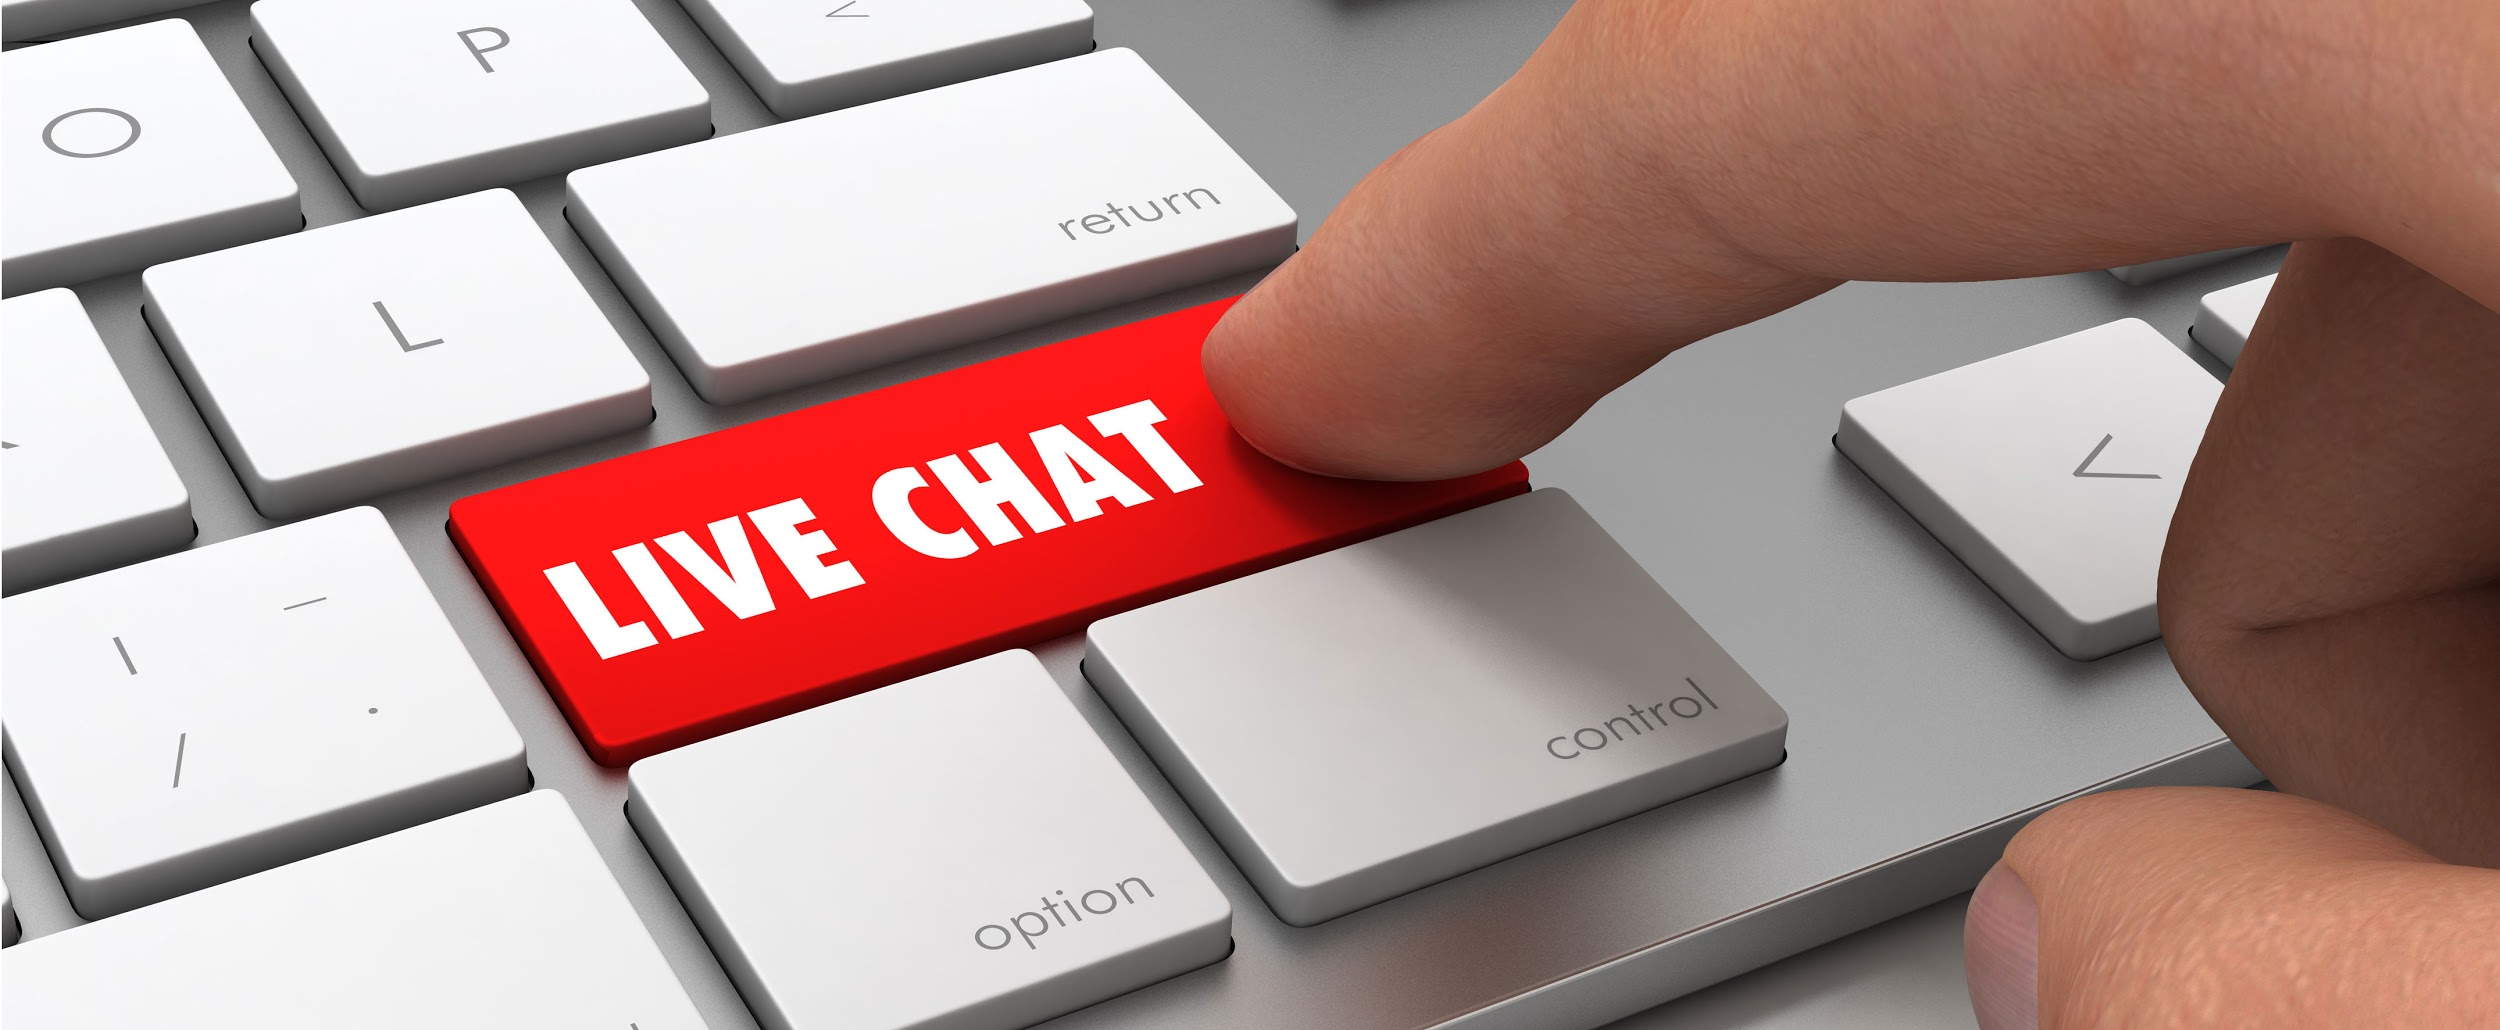 Implementing Live Chat Into Your Website to Increase Conversions